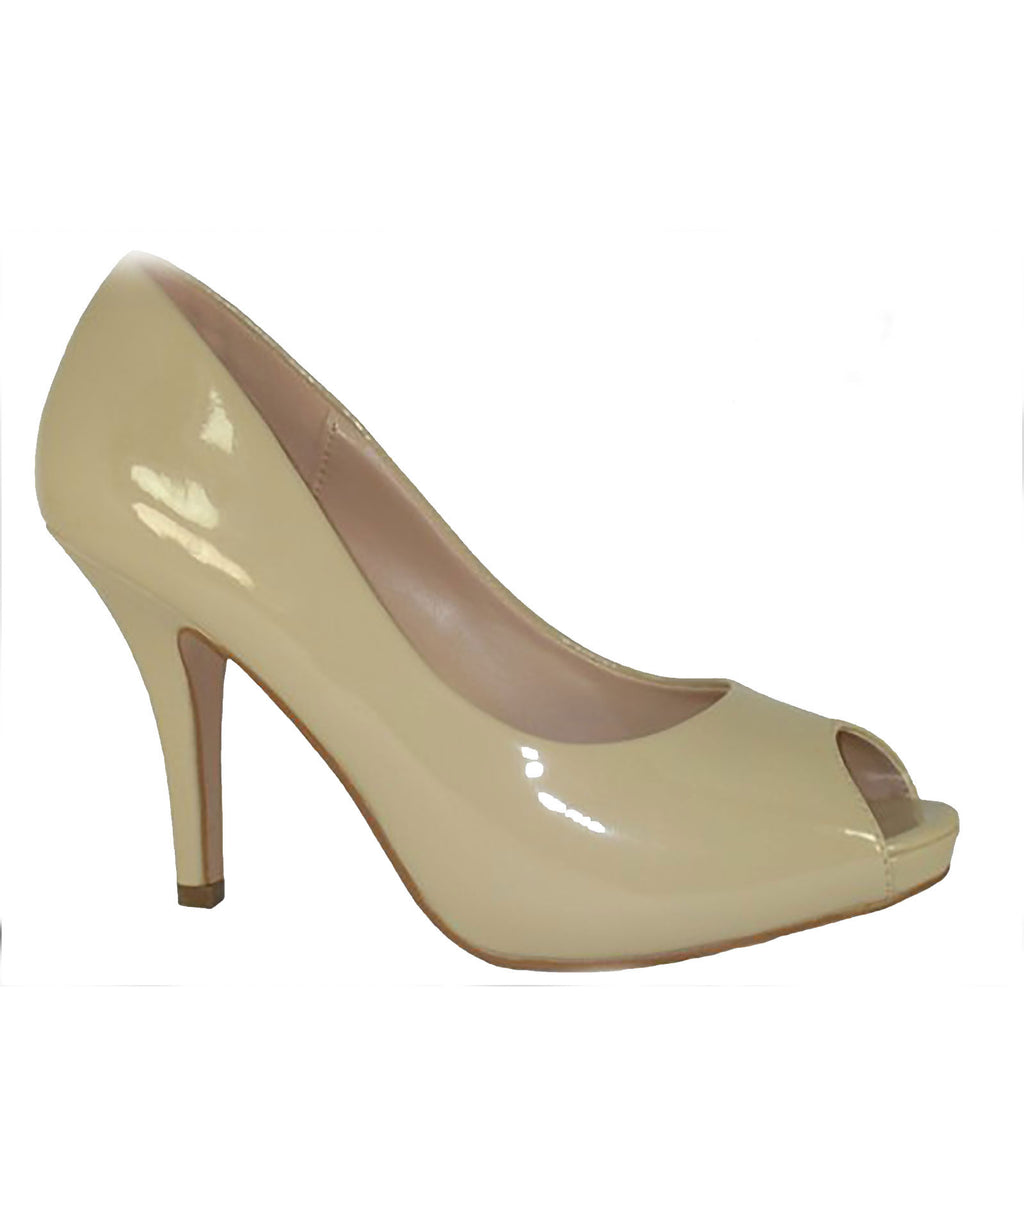 Your Party Shoes Womens Charlotte Nude Heels - Frankie's on the Park